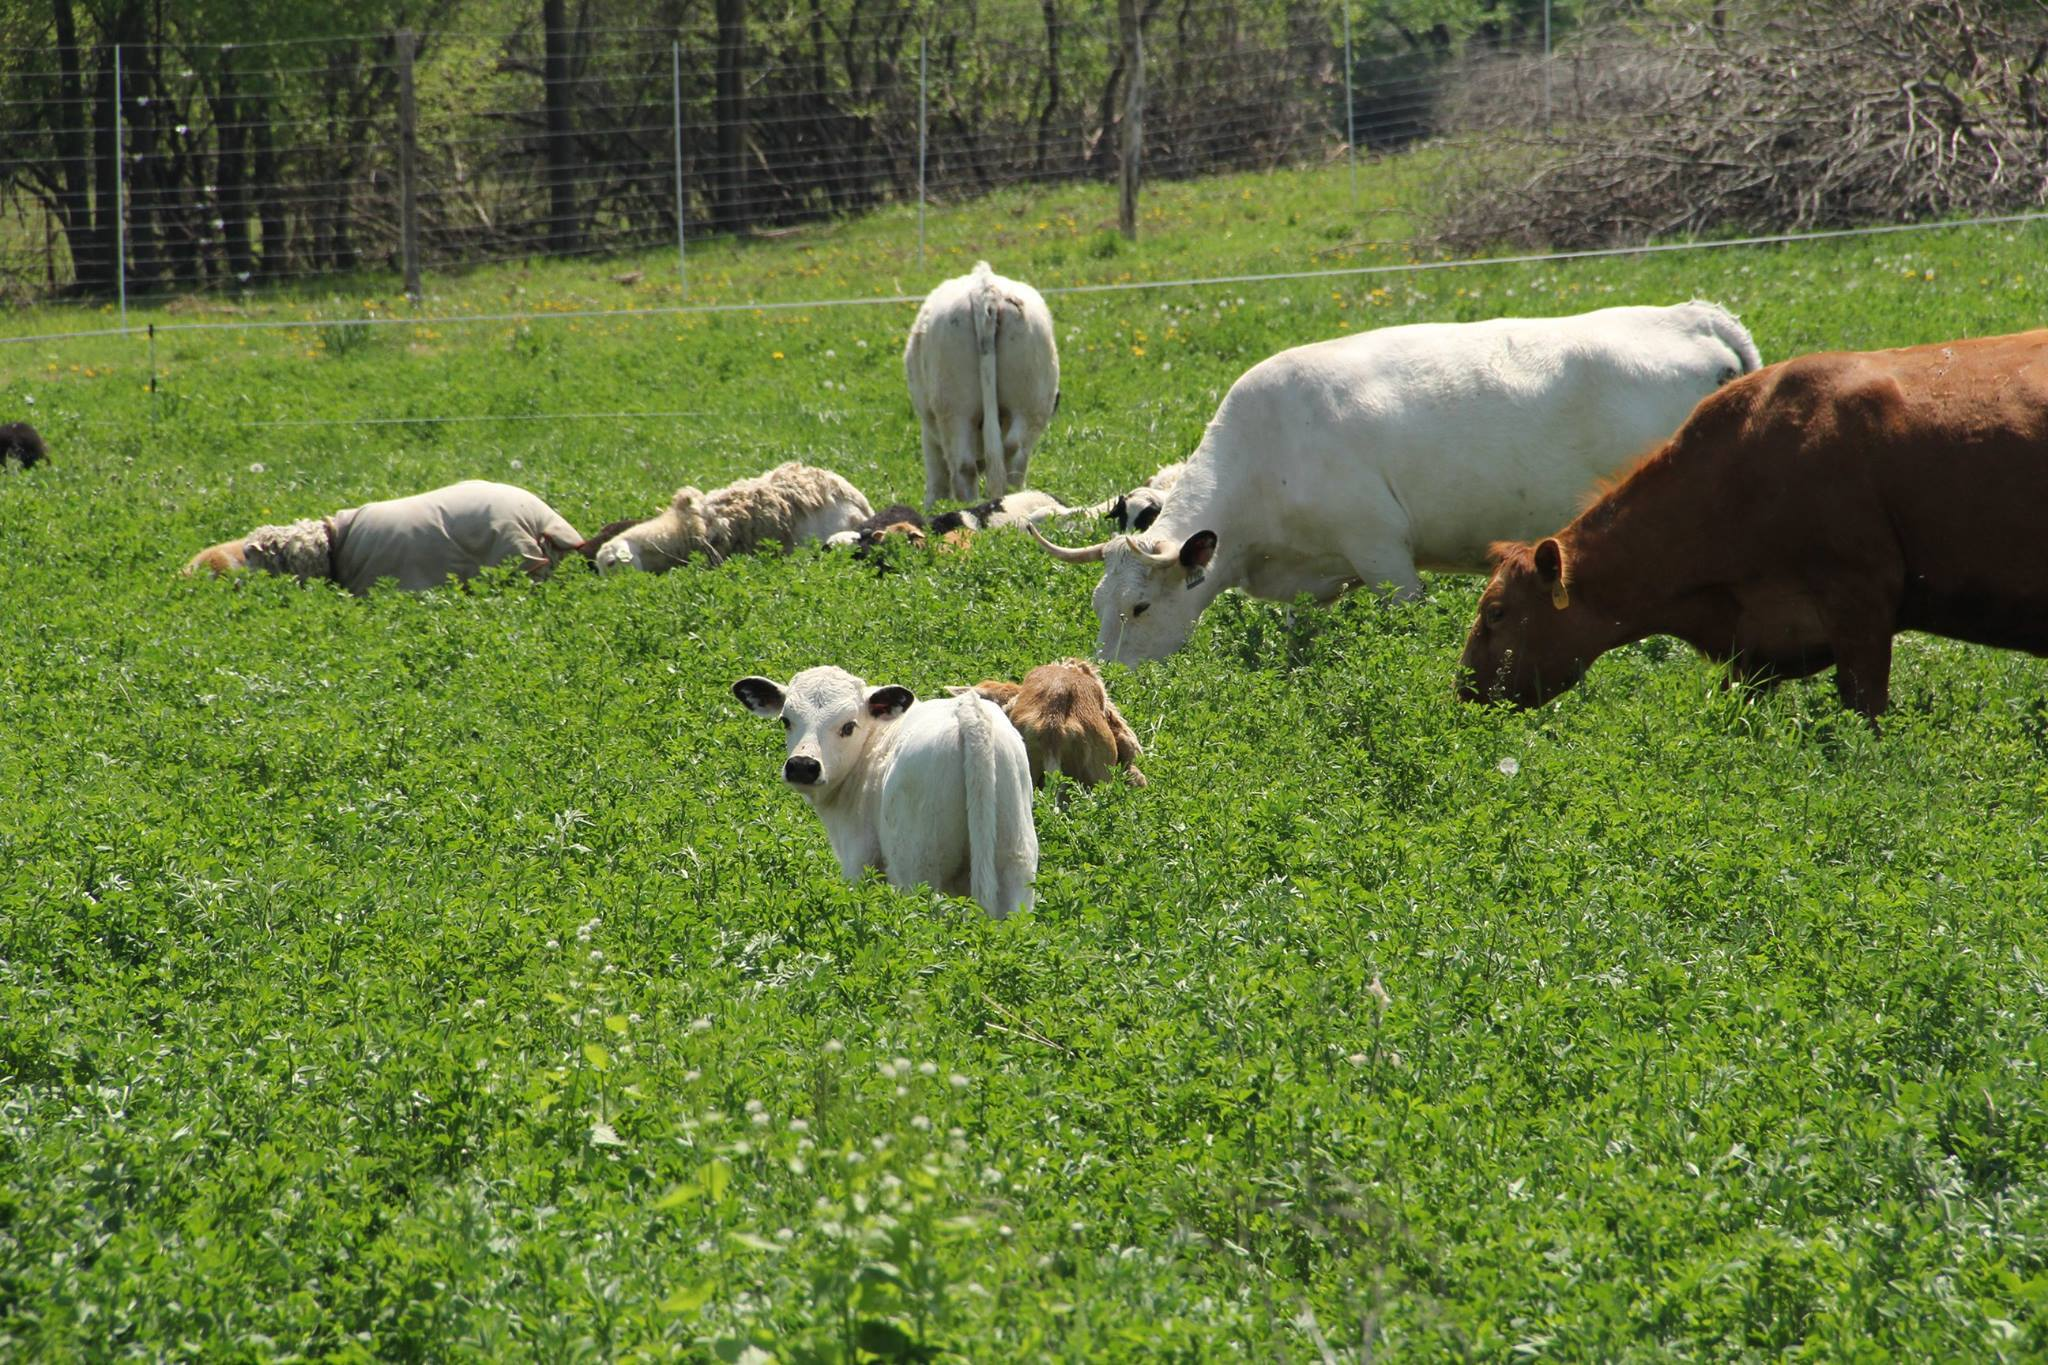 Develop a Forage Chain for Your Livestock   ,  May 30, 2018  Kent Solberg, Grazing and Livestock Specialist with the Sustainable Farming Association, will discusses how to the most of your livestock operation by sequencing a combination of annual, perennial, and stored forages to feed your ruminant animals.    Watch Recording    or    Download Slides